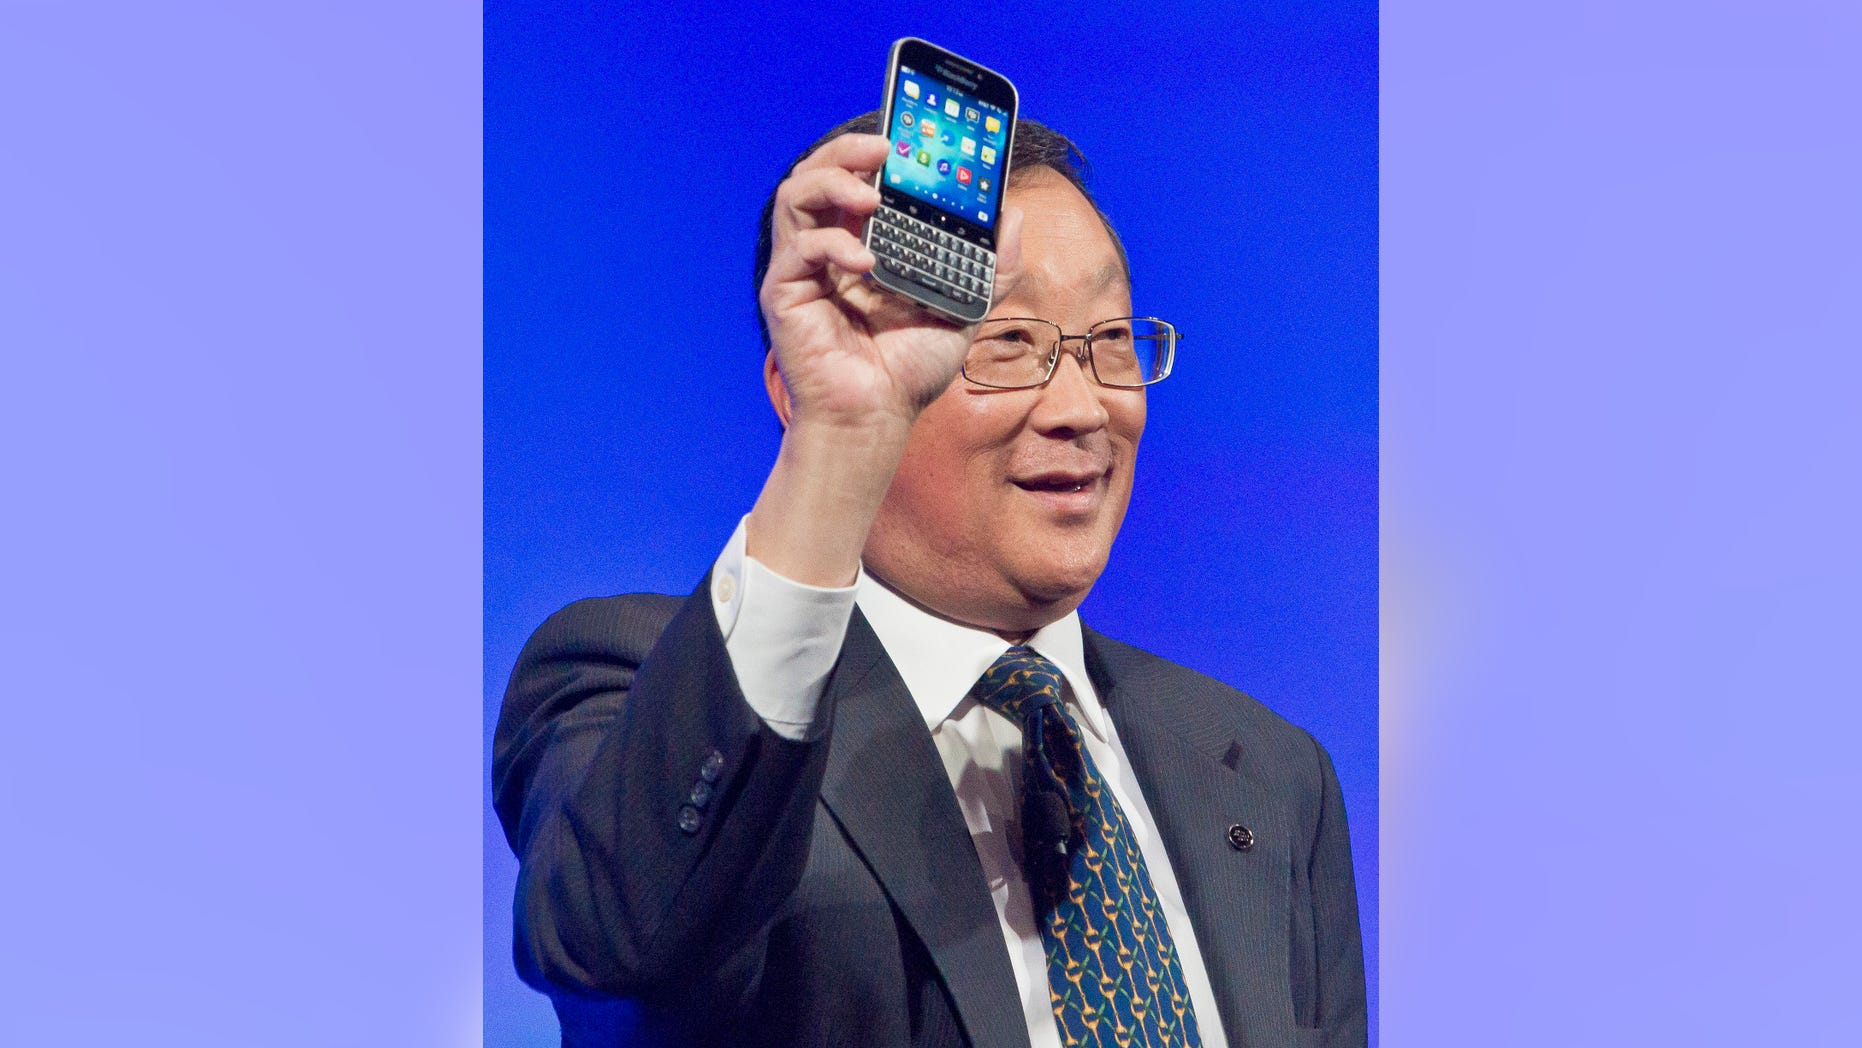 BlackBerry CEO John Chen introduces the company's new phone, the BlackBerry Classic, during a news conference Dec. 17, 2014, in New York.